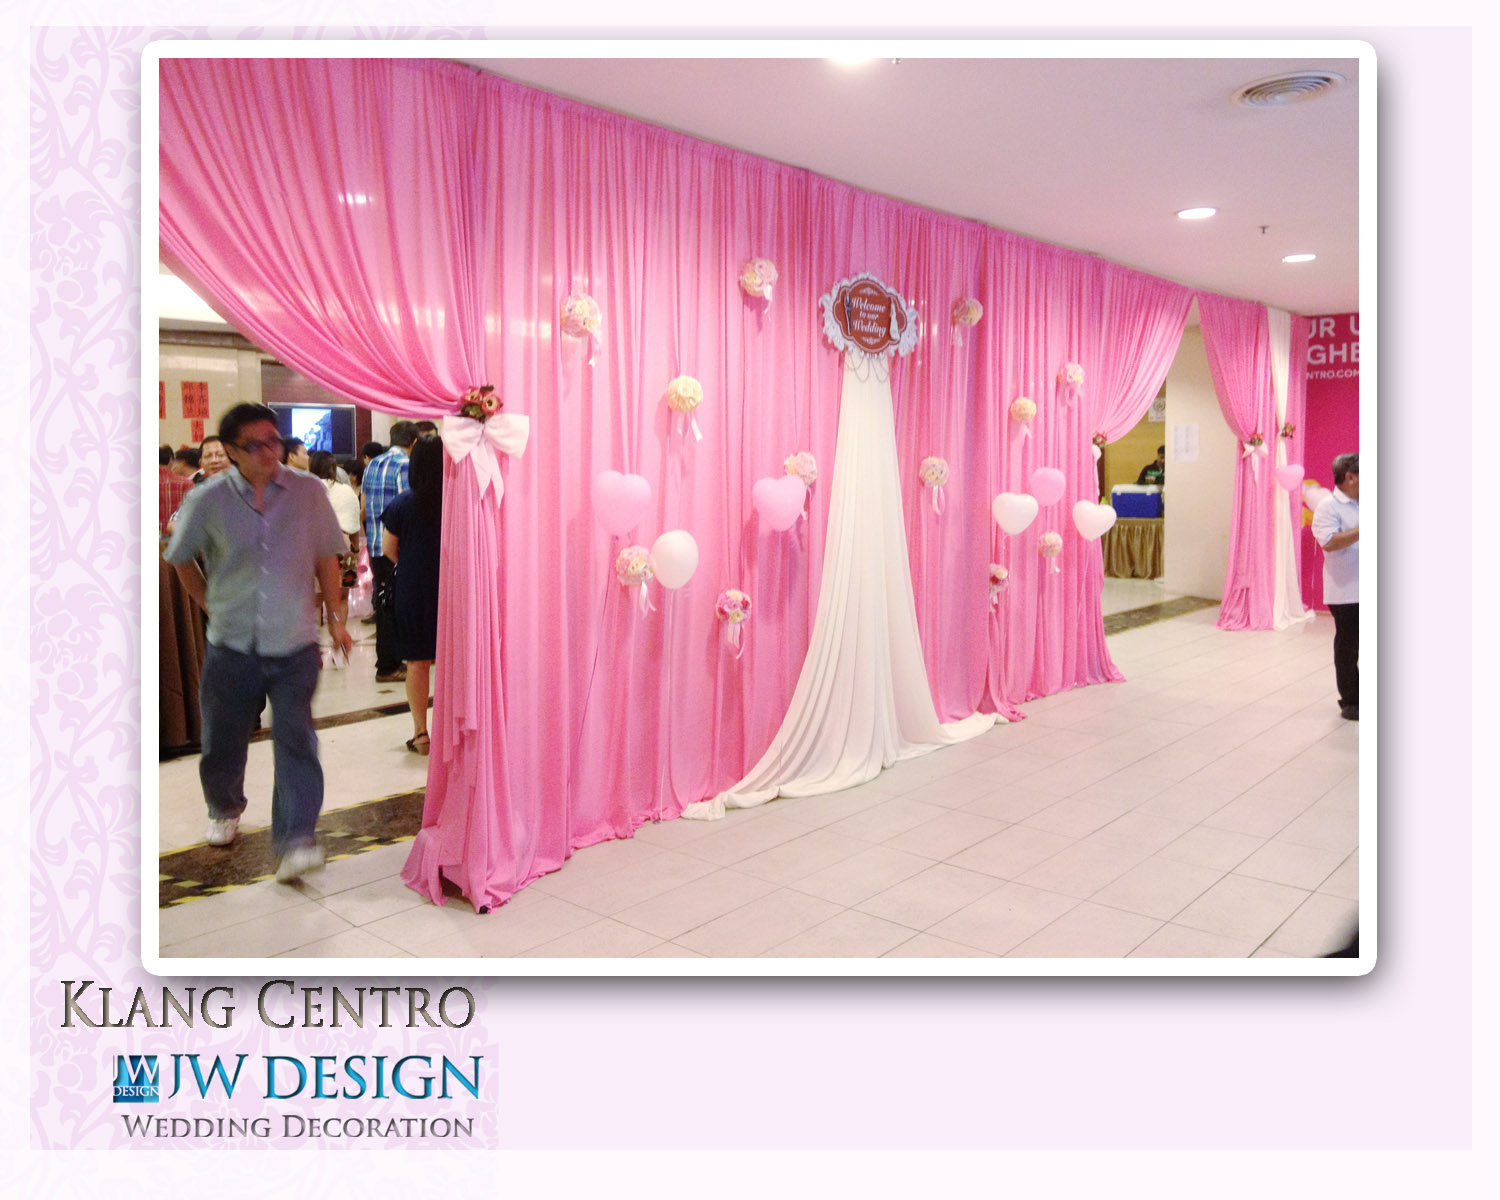 Jw design wedding decoration edwin amelias wedding klang edwin amelias wedding klang centro ballroom junglespirit Gallery